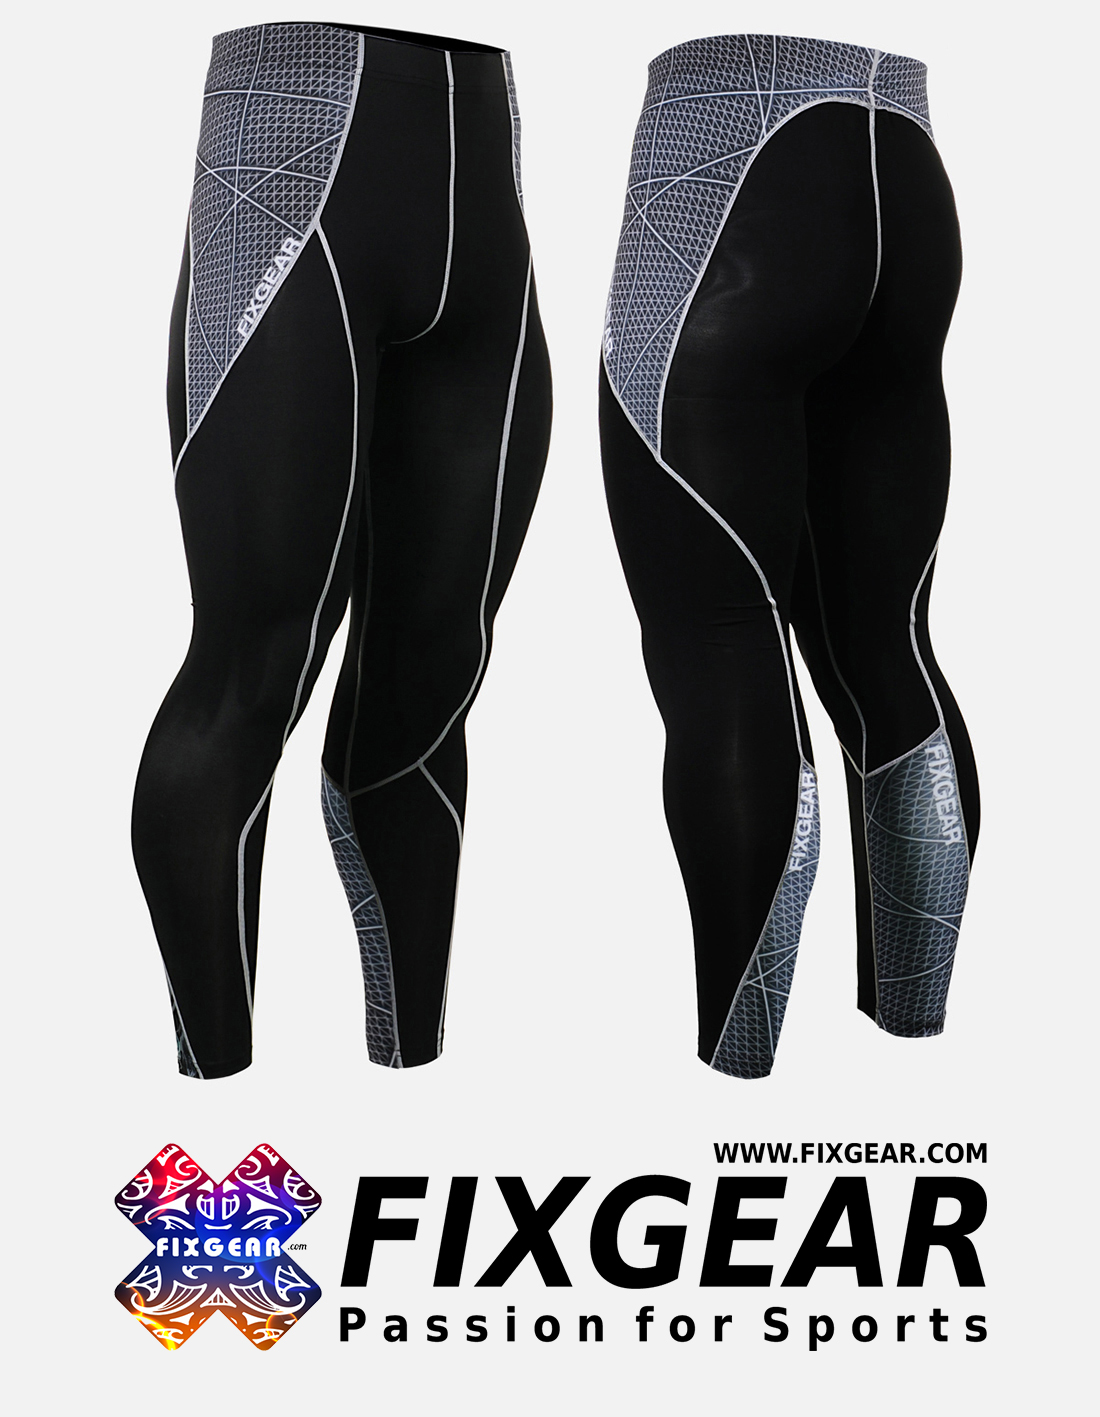 FIXGEAR P2L-B70 Compression Leggings Pants